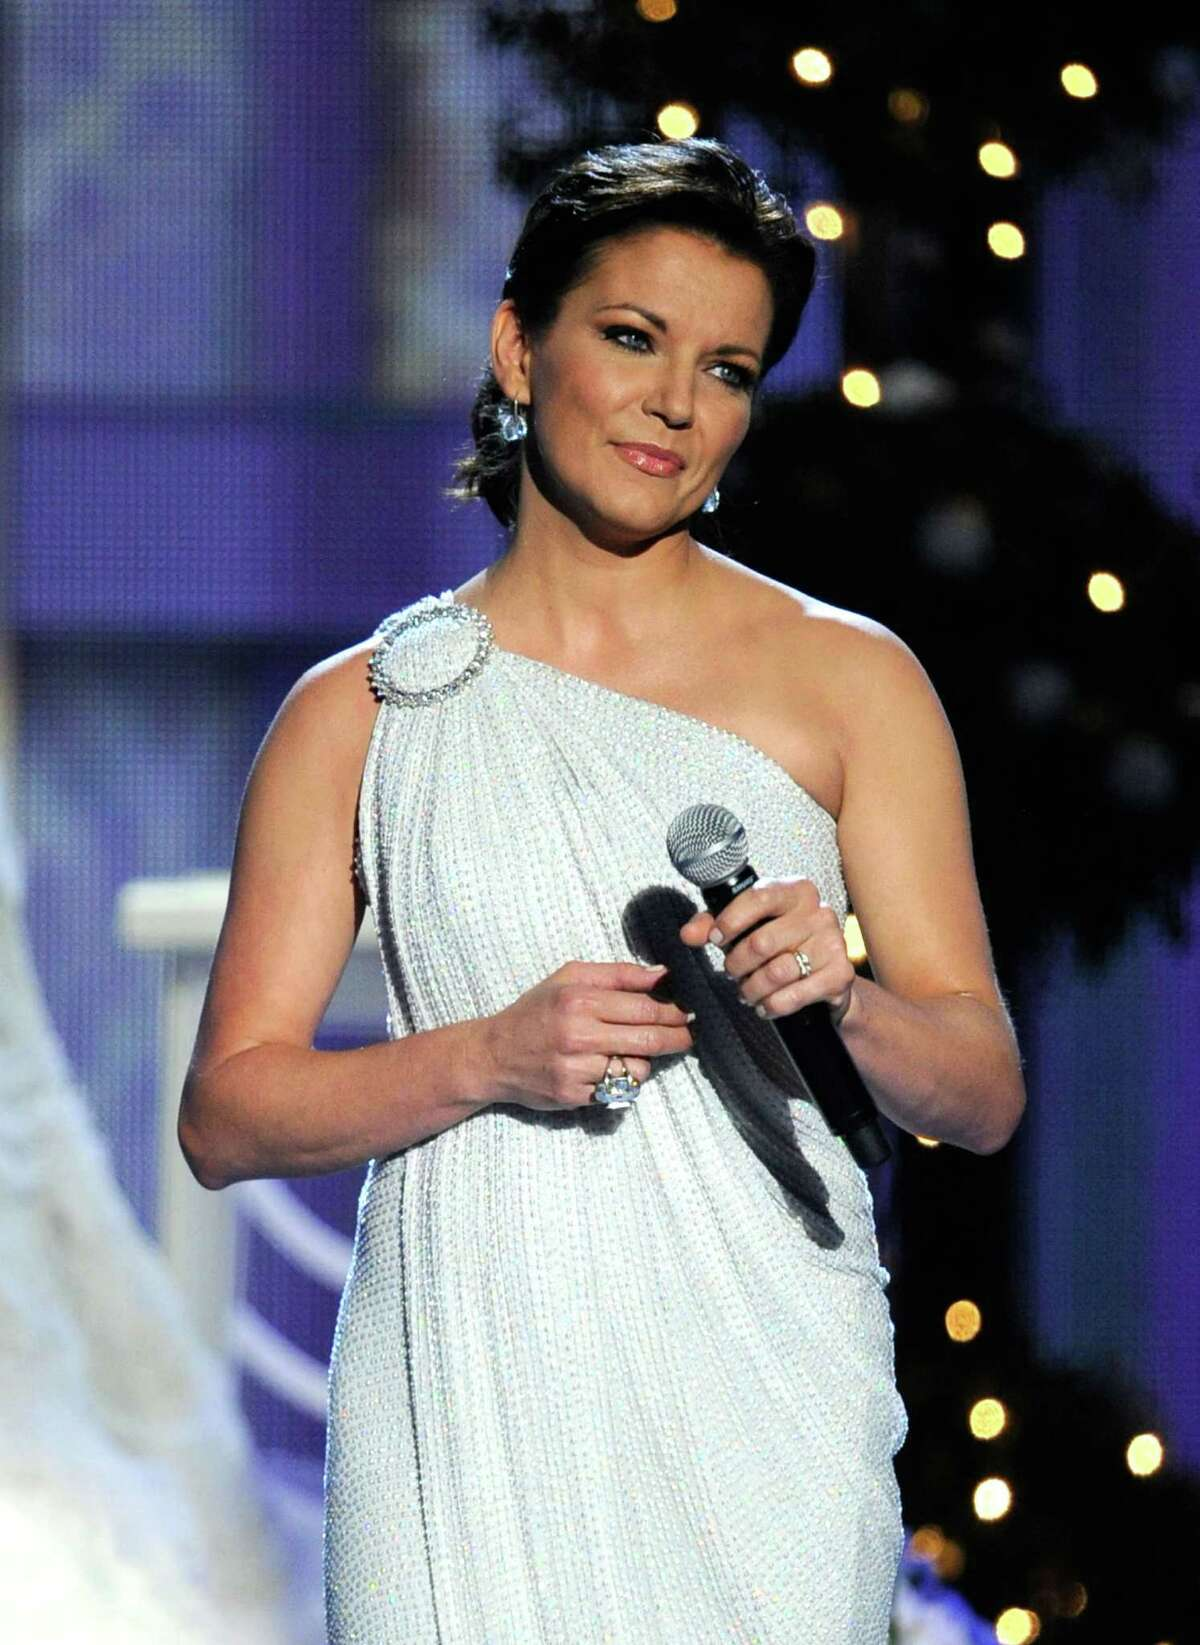 """LAS VEGAS, NV - APRIL 01: Singers Martina McBride performs """"Marry Me"""" at the 47th Annual Academy Of Country Music Awards held at the MGM Grand Garden Arena on April 1, 2012 in Las Vegas, Nevada. (Photo by Ethan Miller/Getty Images)"""